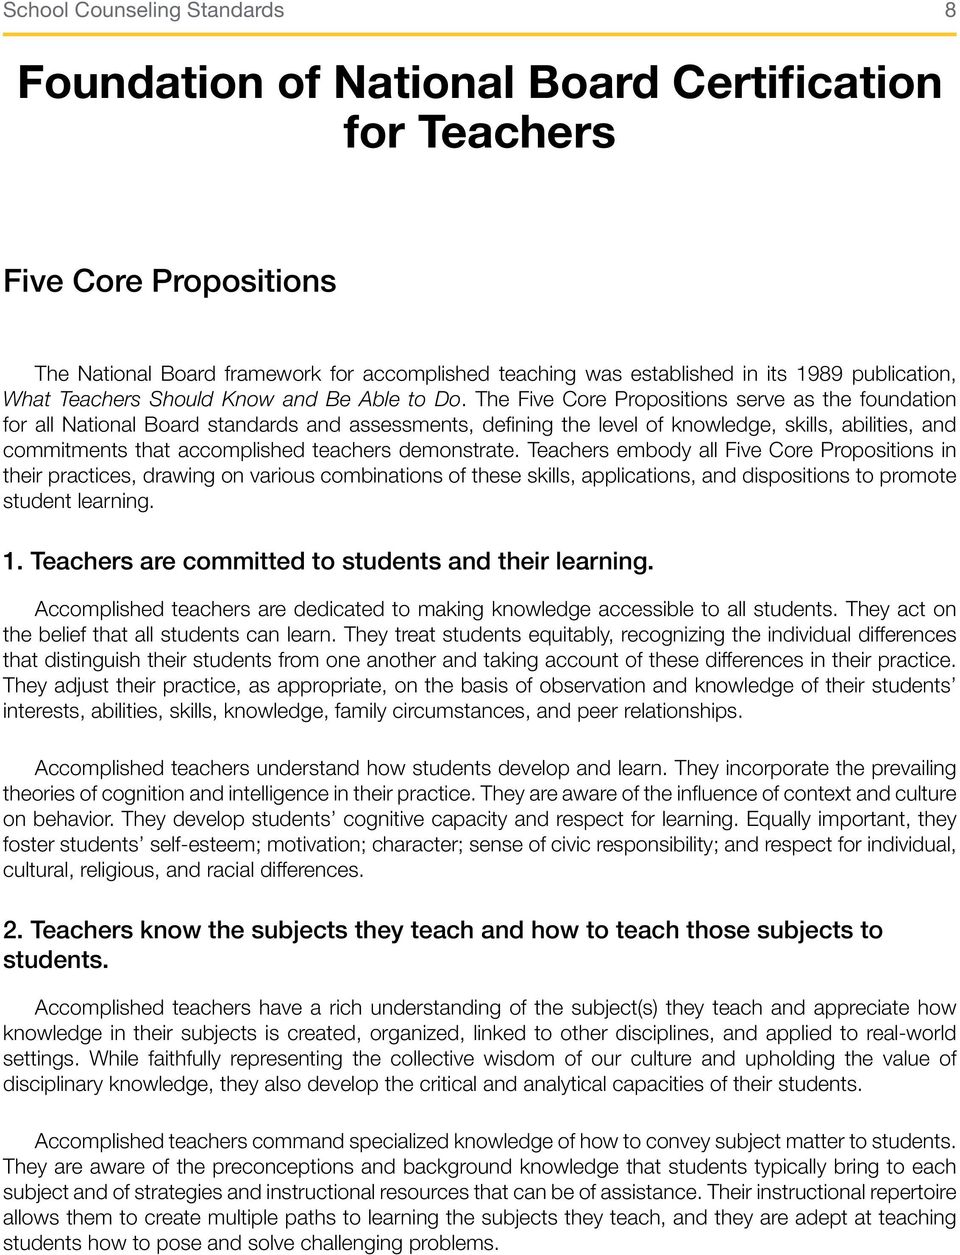 The Five Core Propositions serve as the foundation for all National Board standards and assessments, defining the level of knowledge, skills, abilities, and commitments that accomplished teachers